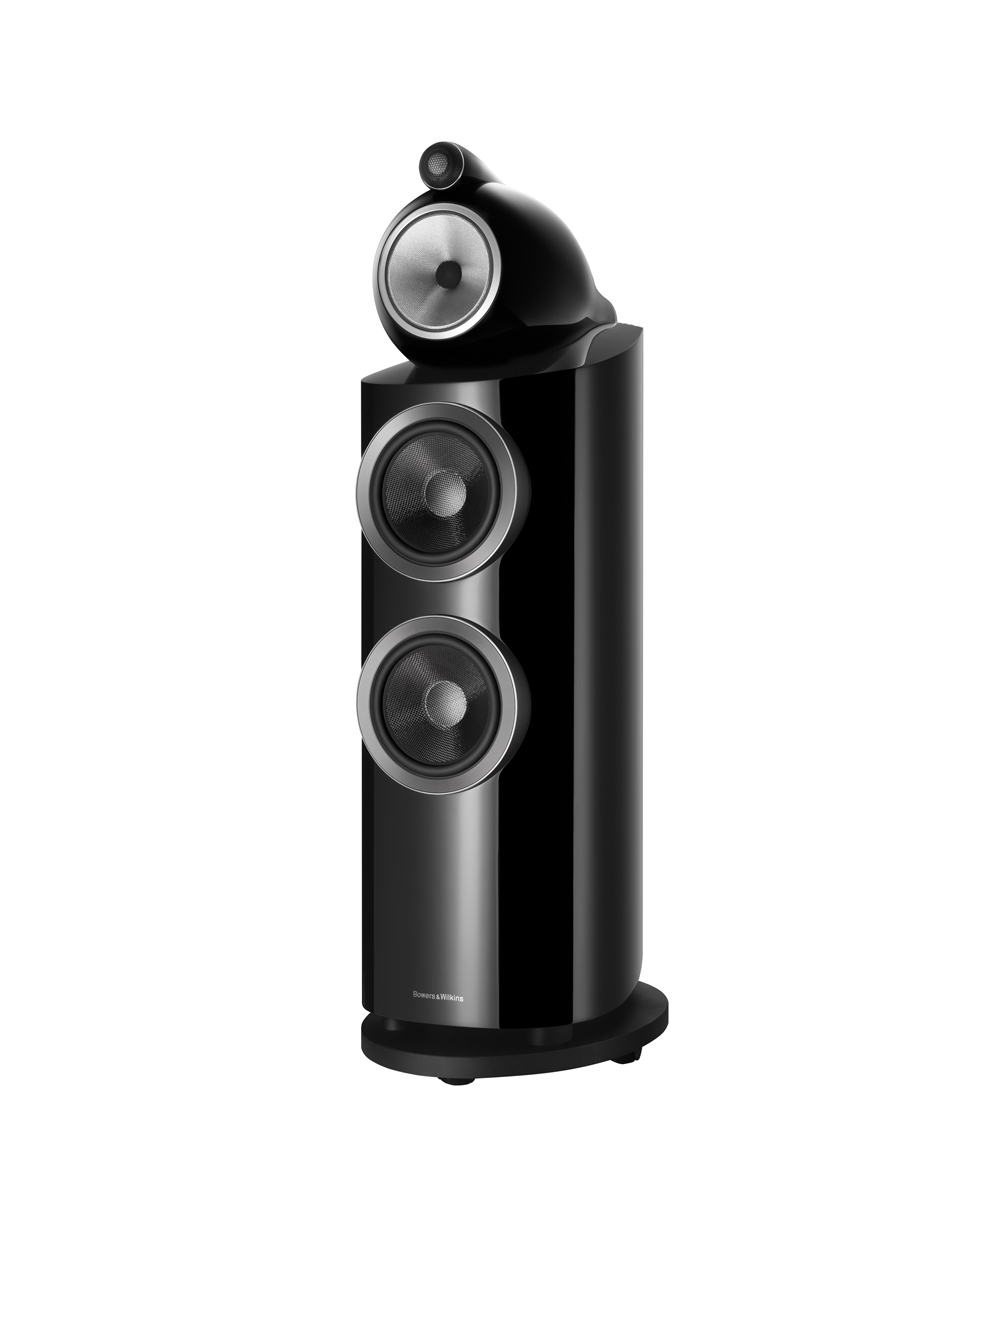 The luxury audio towers also come in black.